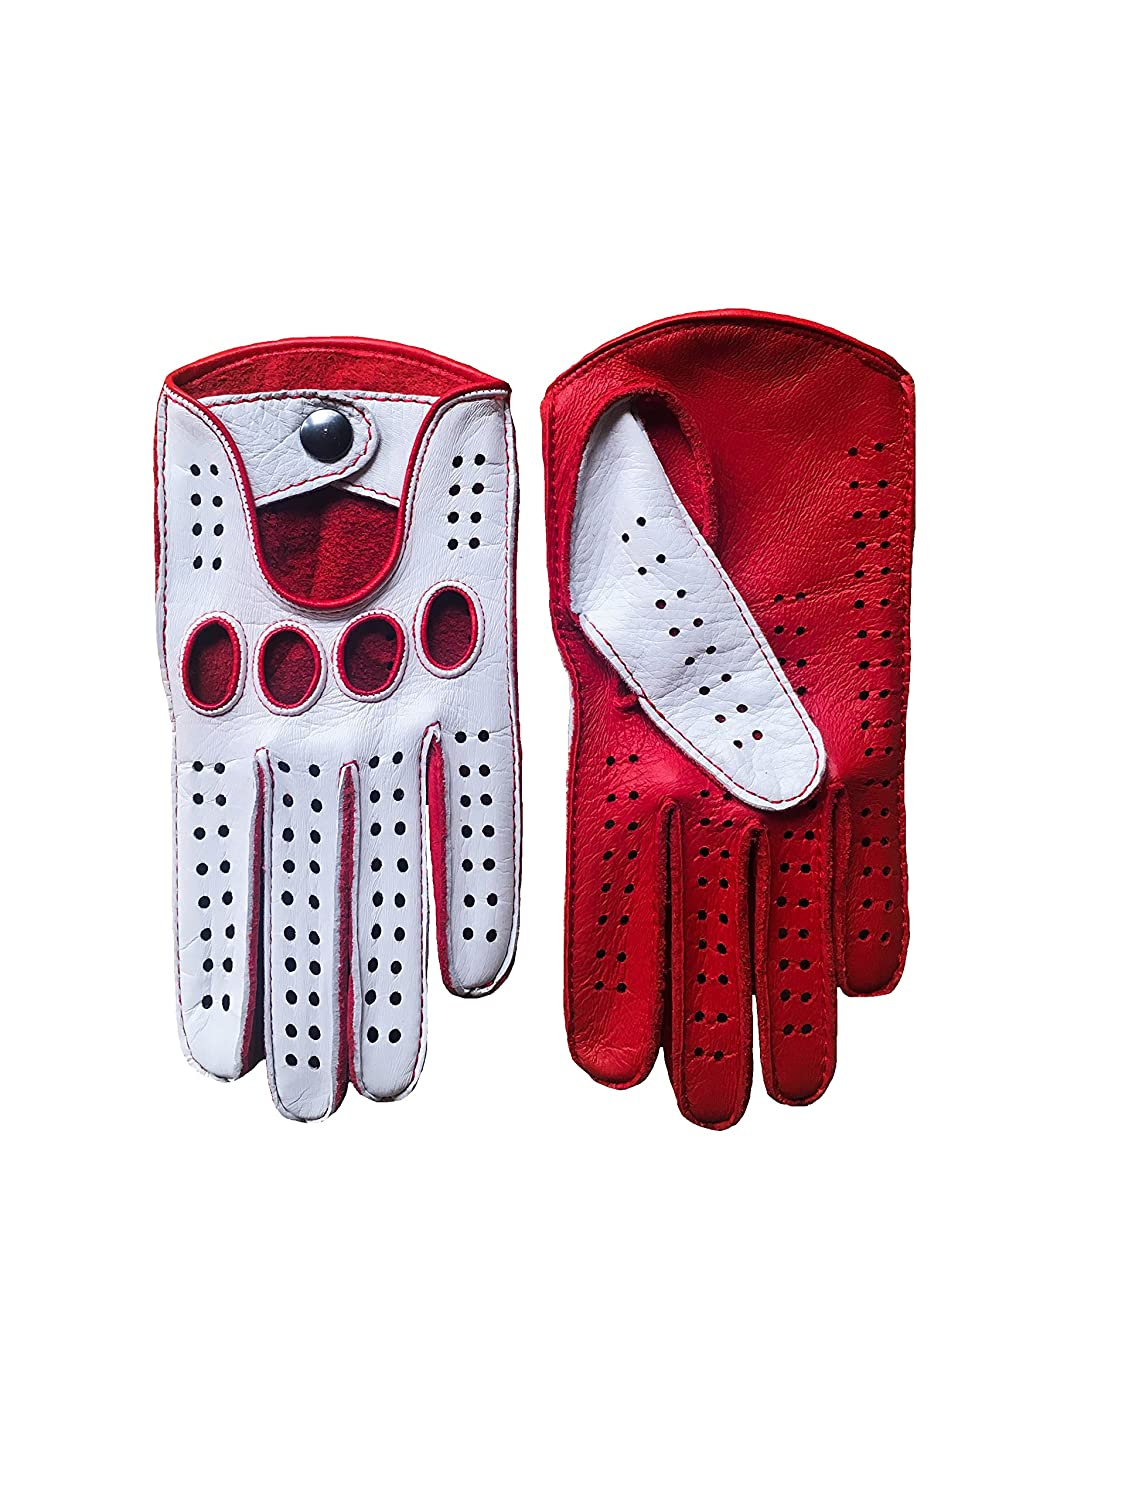 Gaspar leather driving gloves - Men S Driving Gloves Color Red White By Hungant At Amazon Men S Clothing Store